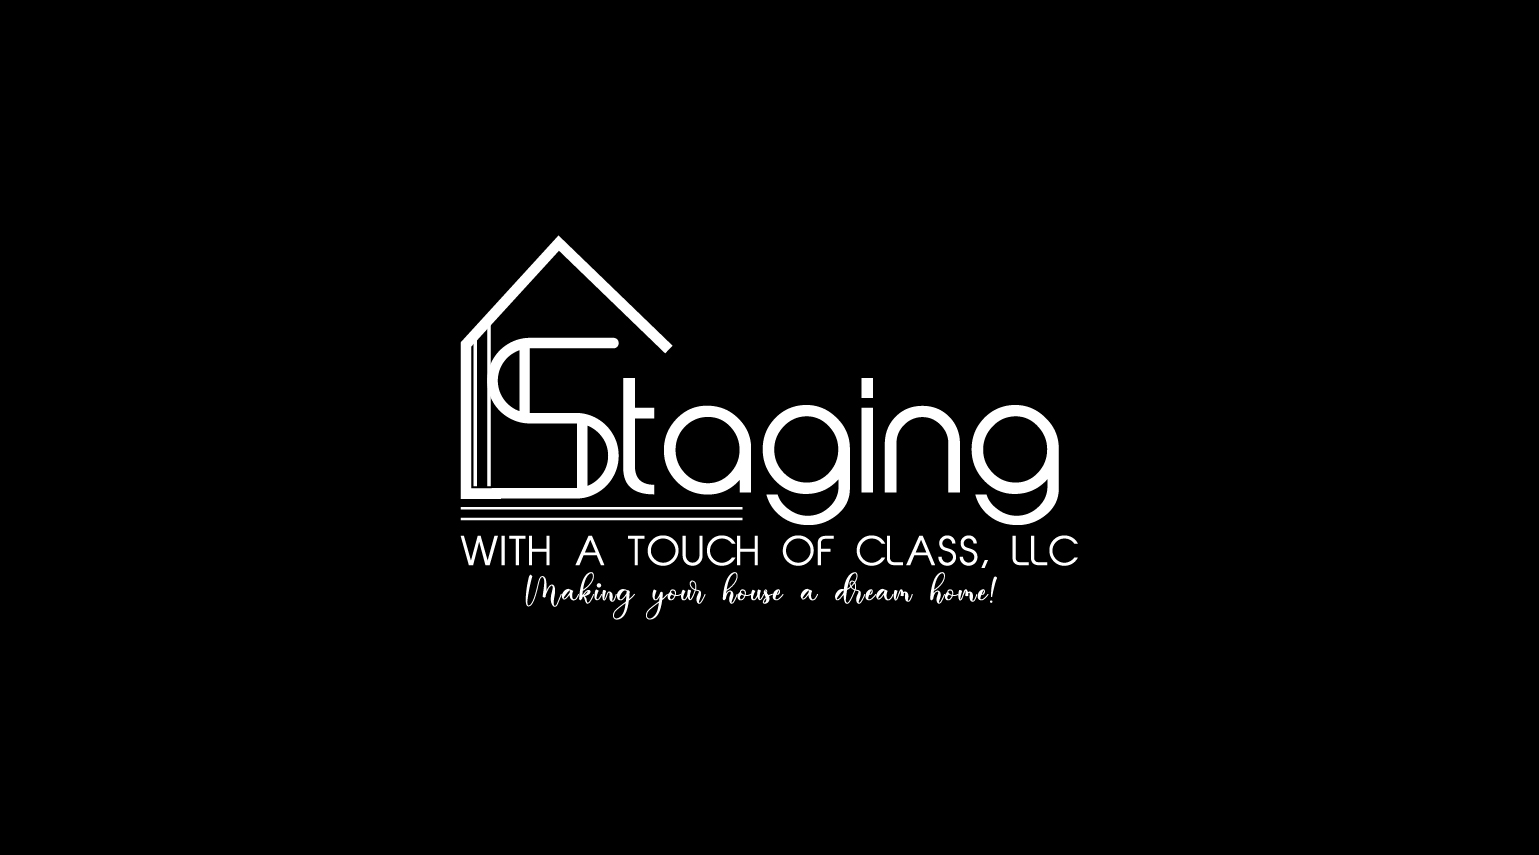 Staging With A Touch of Class, LLC.-hw-FF-01